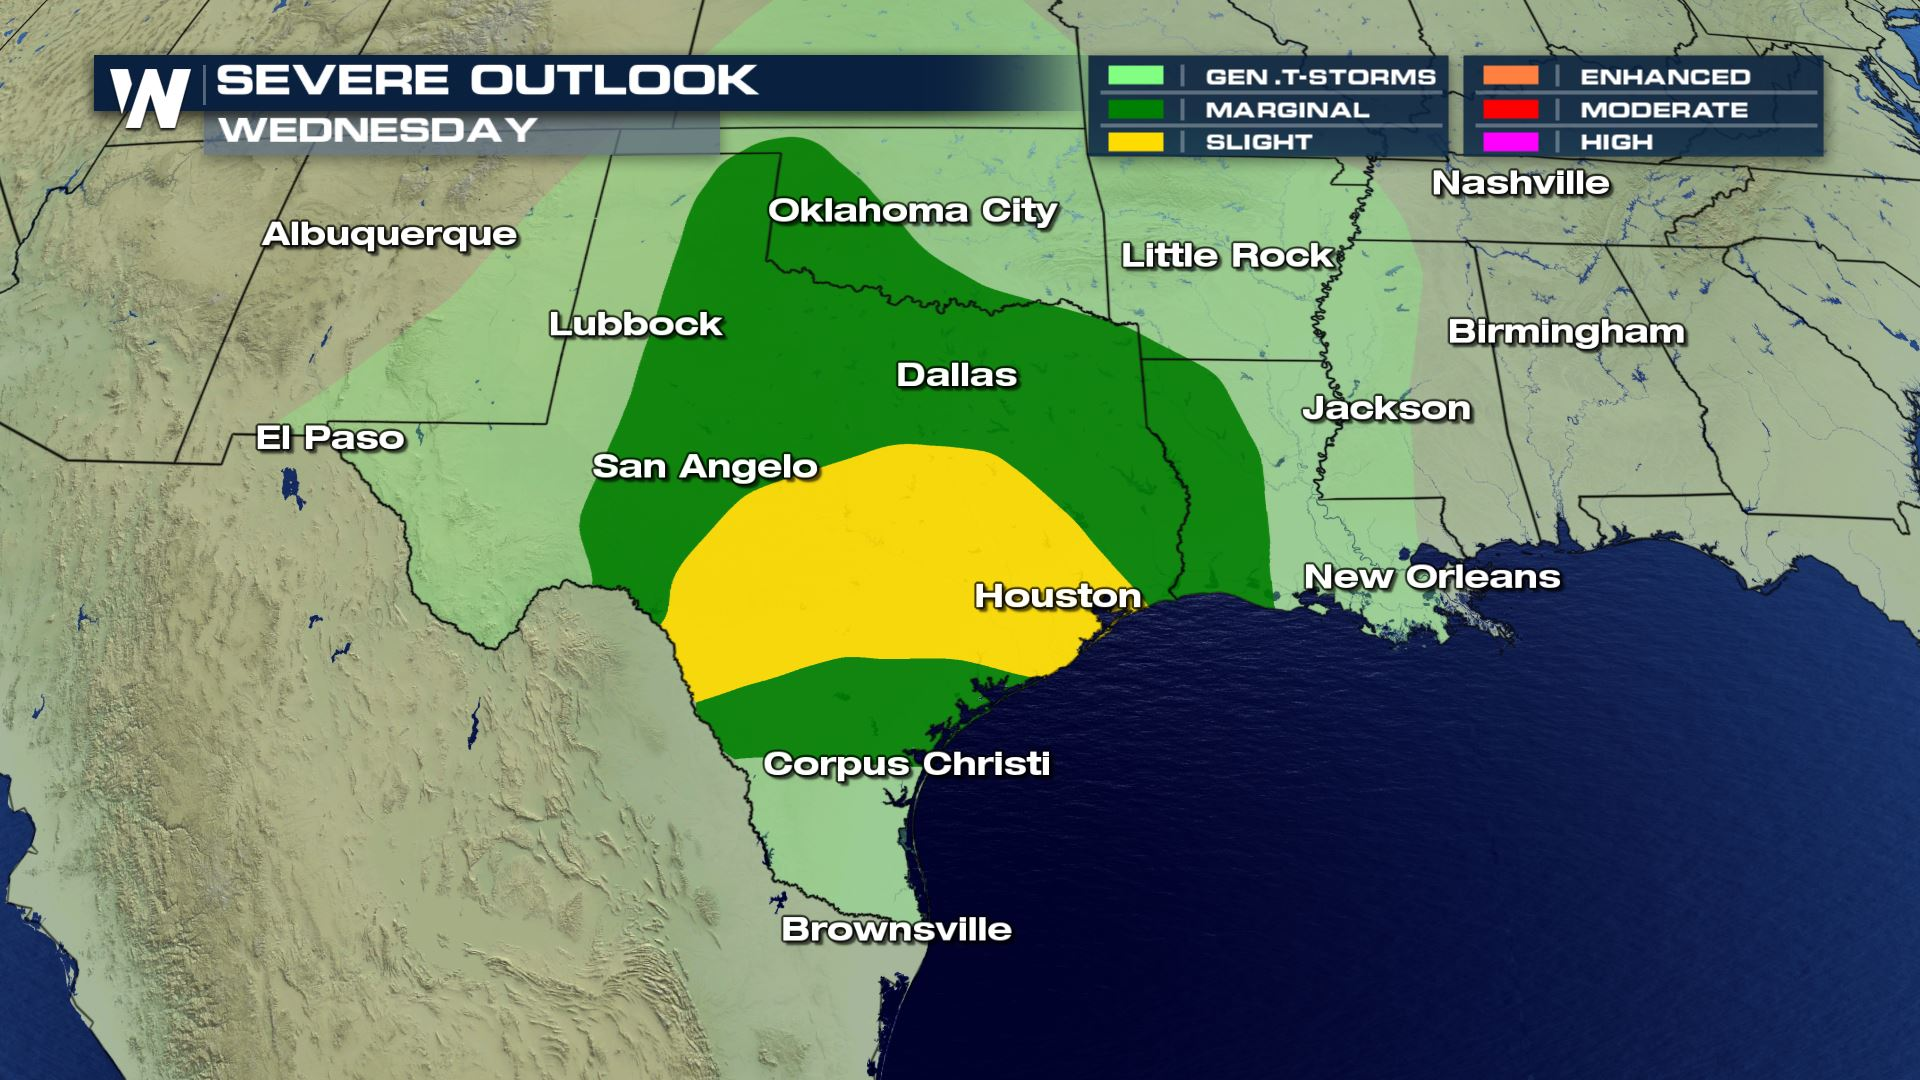 Severe Storms Likely Across Texas Wednesday - WeatherNation on weather houston map, weather mobile map, weather chicago map, weather united states map, weather jakarta map, weather tucson map, weather texas map, weather ohio map, weather boston map, weather florida map, weather dallas map, weather paris france map, weather california map, weather orlando map, radar weather map, weather edmonton alberta map, weather colorado map, weather springfield il map, weather virginia map, weather las vegas map,